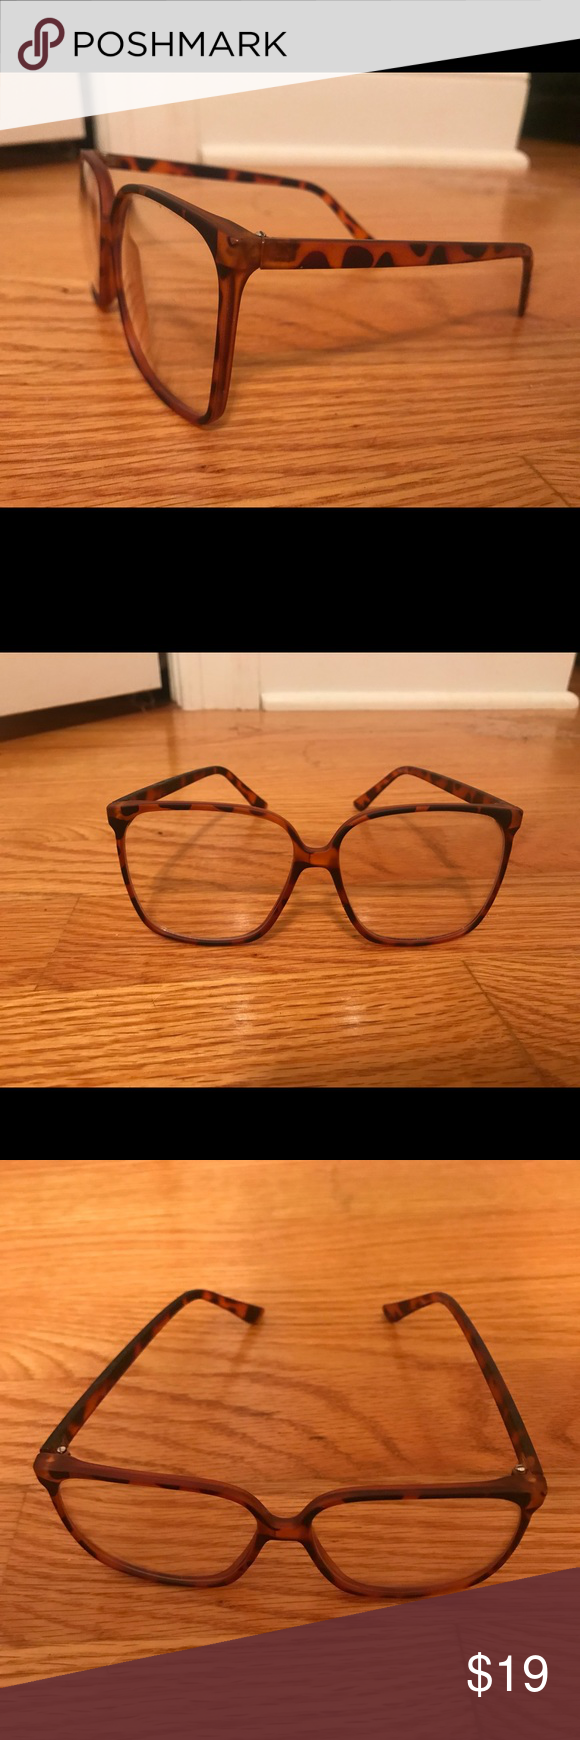 d41228b5c0a26 Oversized NON PRESCRIPTION glasses. Cheetah PrintGlassesCheetahs PrintingEyeglassesLeopard ...